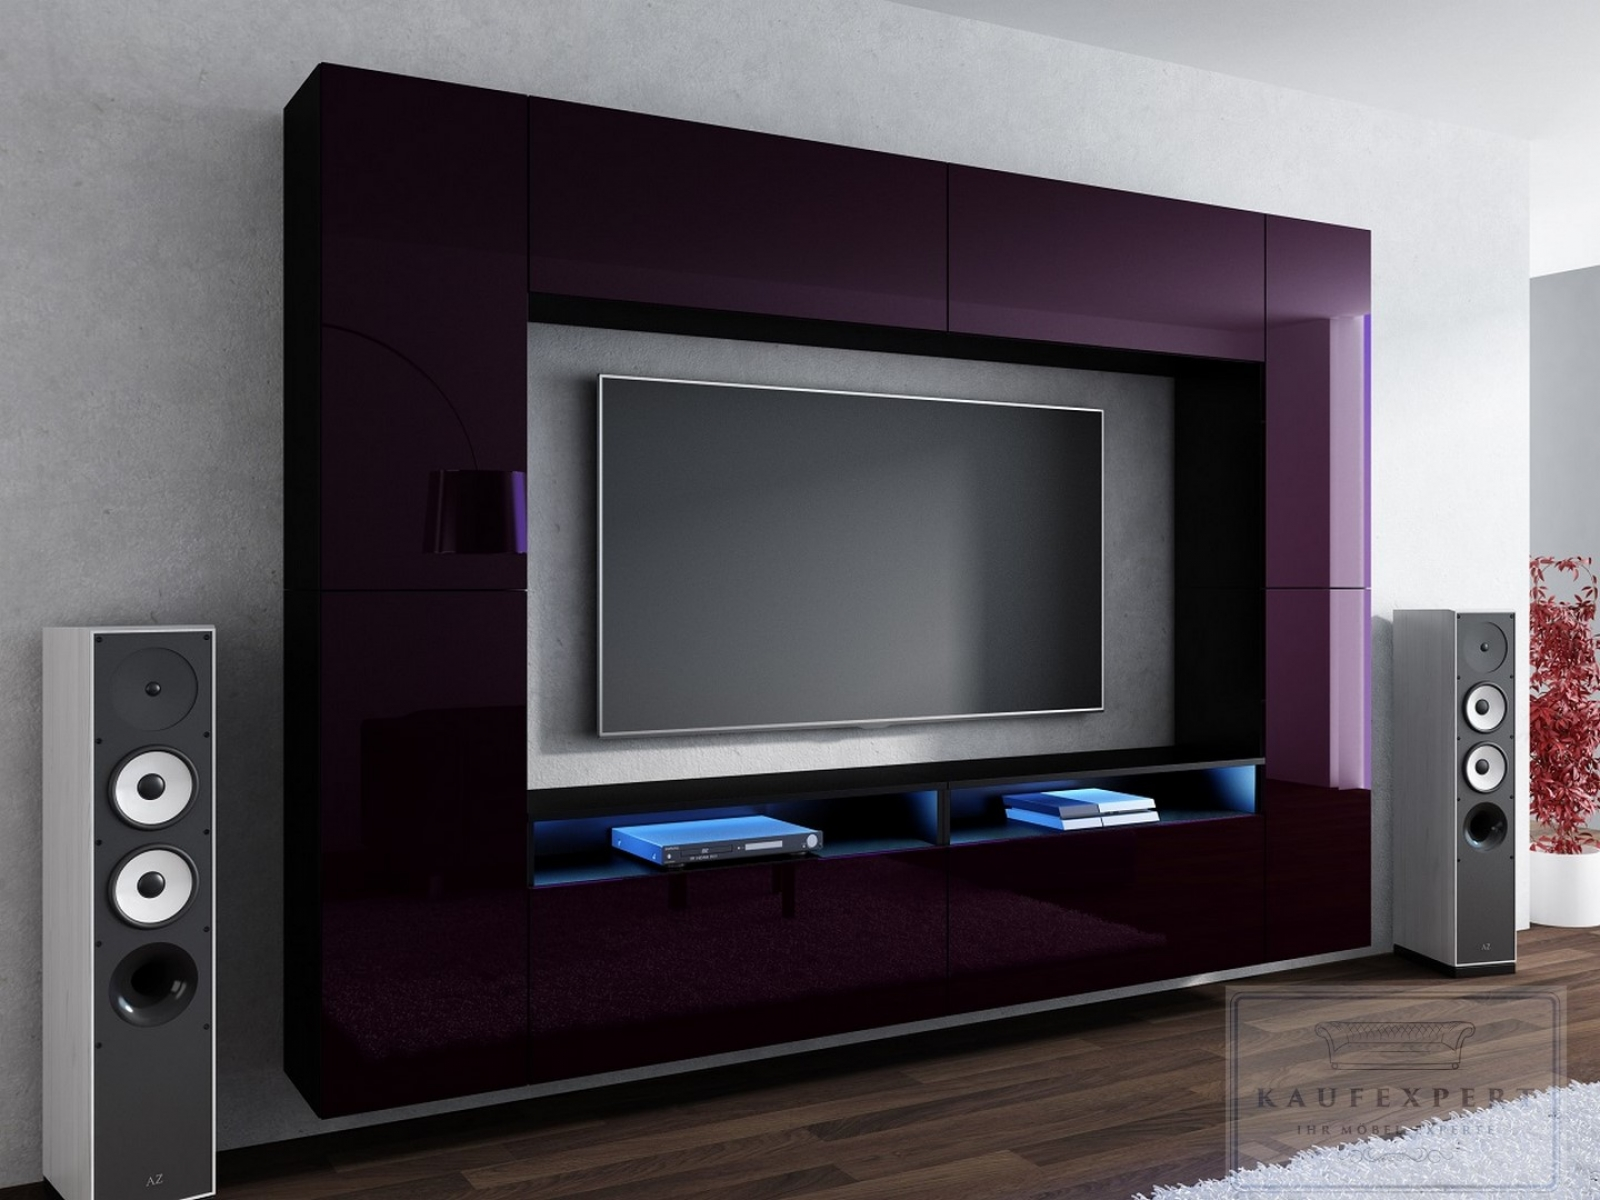 kaufexpert wohnwand cinema aubergine hochglanz schwarz mediawand medienwand design modern led. Black Bedroom Furniture Sets. Home Design Ideas